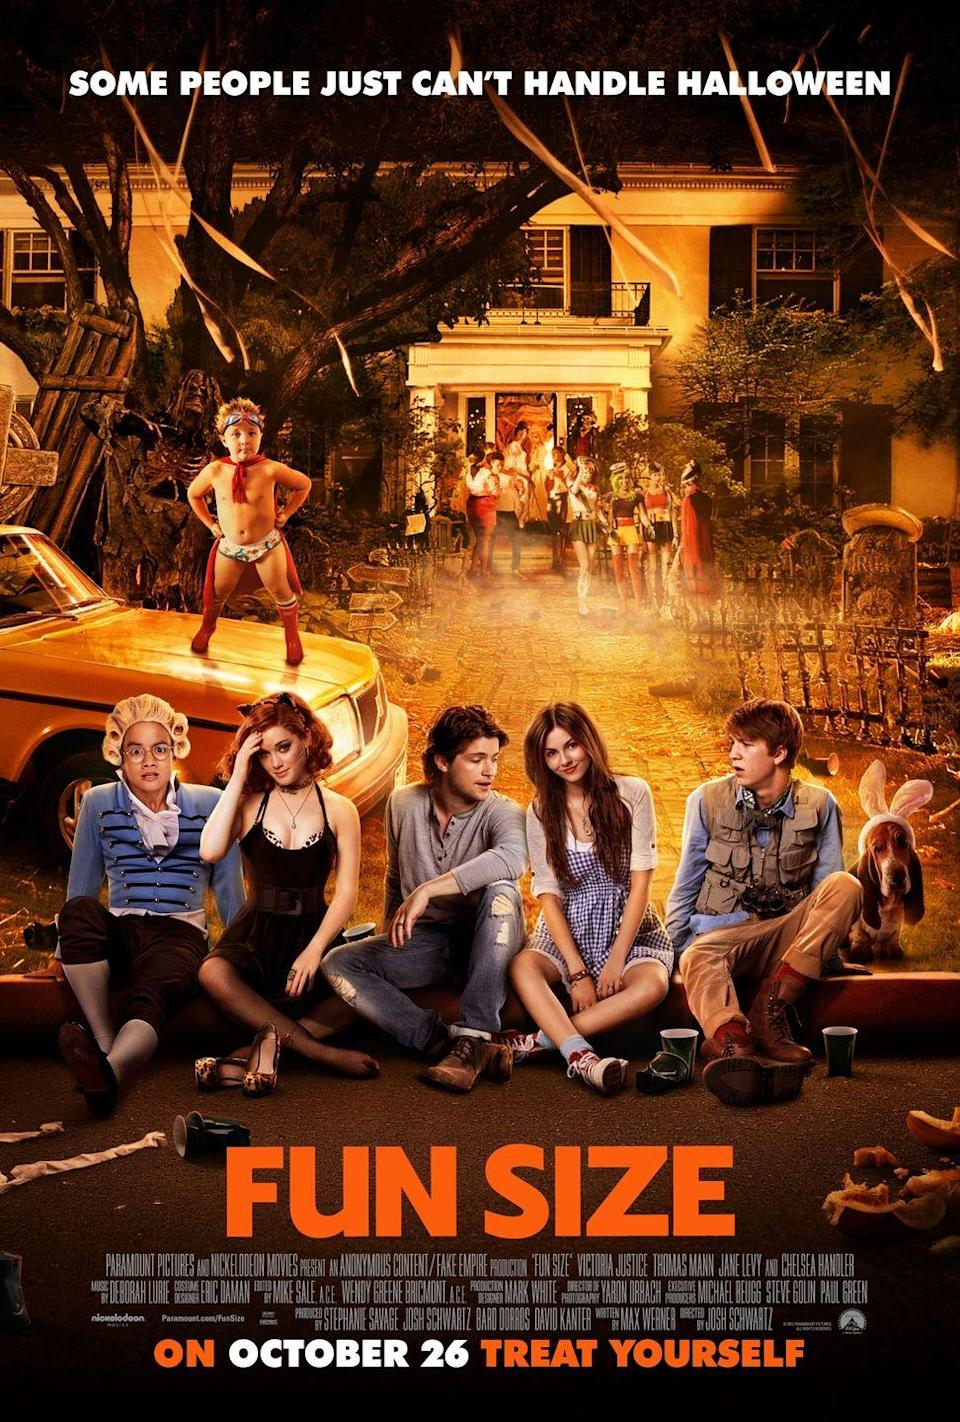 """<p><em>Fun Size </em>is the perfect Halloween comedy if you're looking to laugh while eating all of your trick-or-treat goodies. It stars Victoria Justice as Wren, who is forced to babysit her little brother on Halloween. When he does missing, she must skip the party of the year in order to find him, but things get super complicated super quickly. </p><p><a class=""""link rapid-noclick-resp"""" href=""""https://www.amazon.com/Fun-Size-Victoria-Justice/dp/B08FF62BVX/?tag=syn-yahoo-20&ascsubtag=%5Bartid%7C10065.g.29354714%5Bsrc%7Cyahoo-us"""" rel=""""nofollow noopener"""" target=""""_blank"""" data-ylk=""""slk:Watch Now"""">Watch Now</a></p>"""